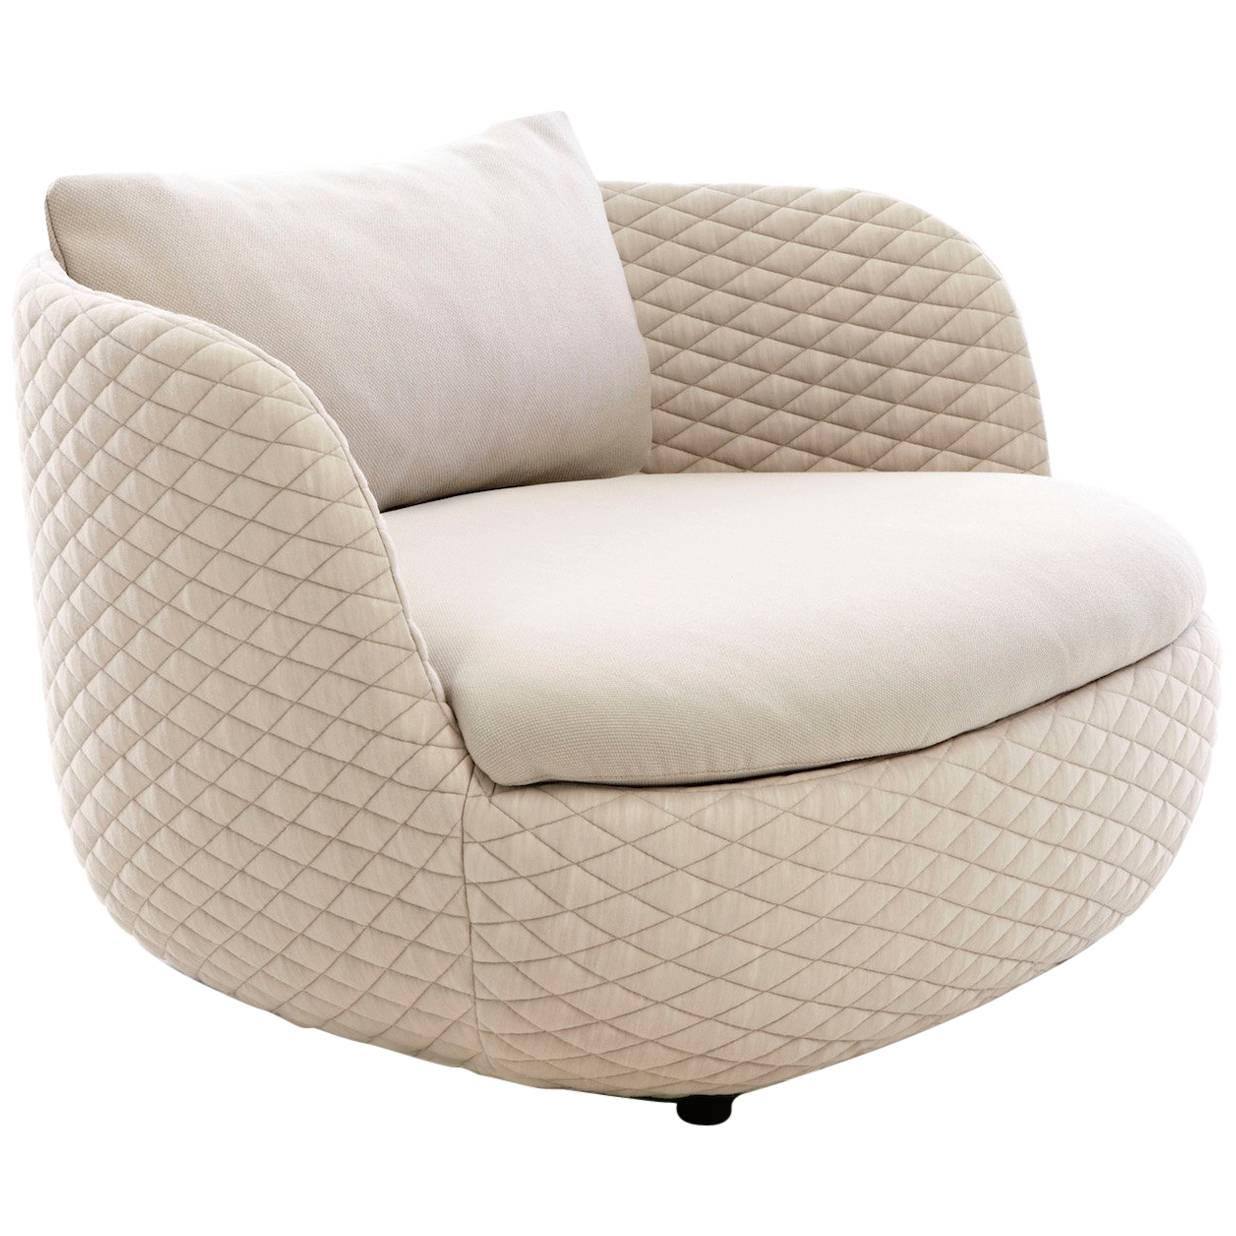 de sede sleeper sofa velvet sofas cheap moooi bart daybed in fabric or leather for sale at 1stdibs